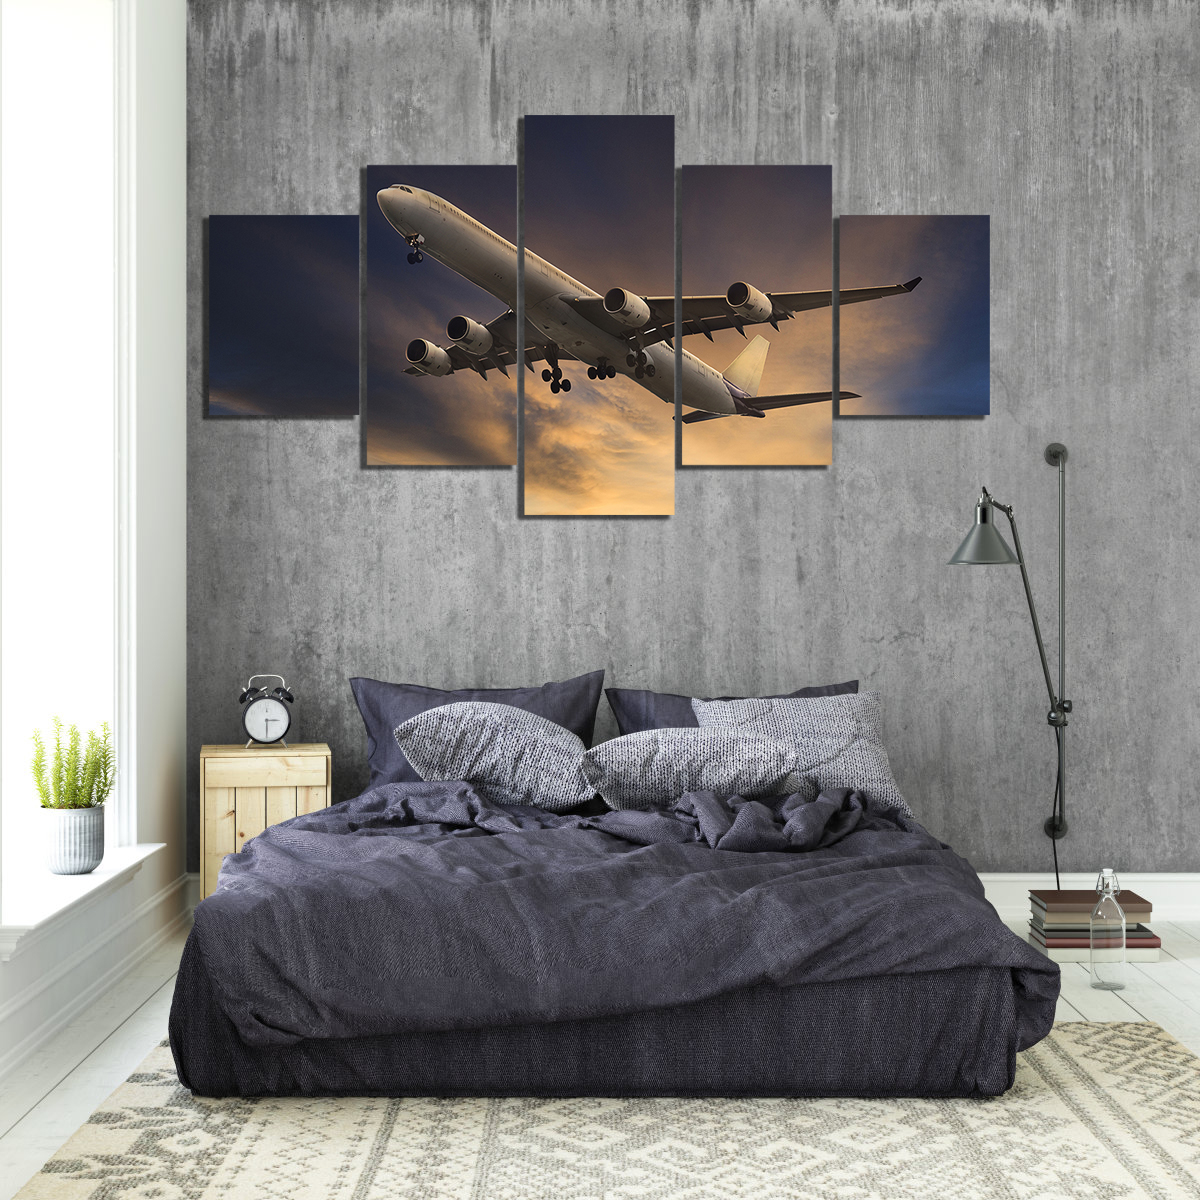 5 Panels Canvas Paintings Airplane Poster Pictures Landscape Wall Art for Home Decor 2